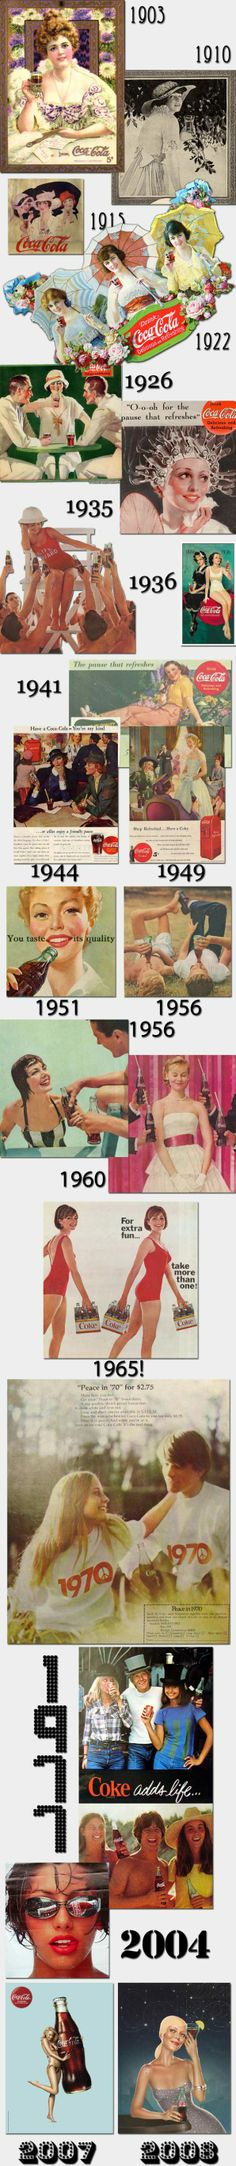 Coca Cola through the years